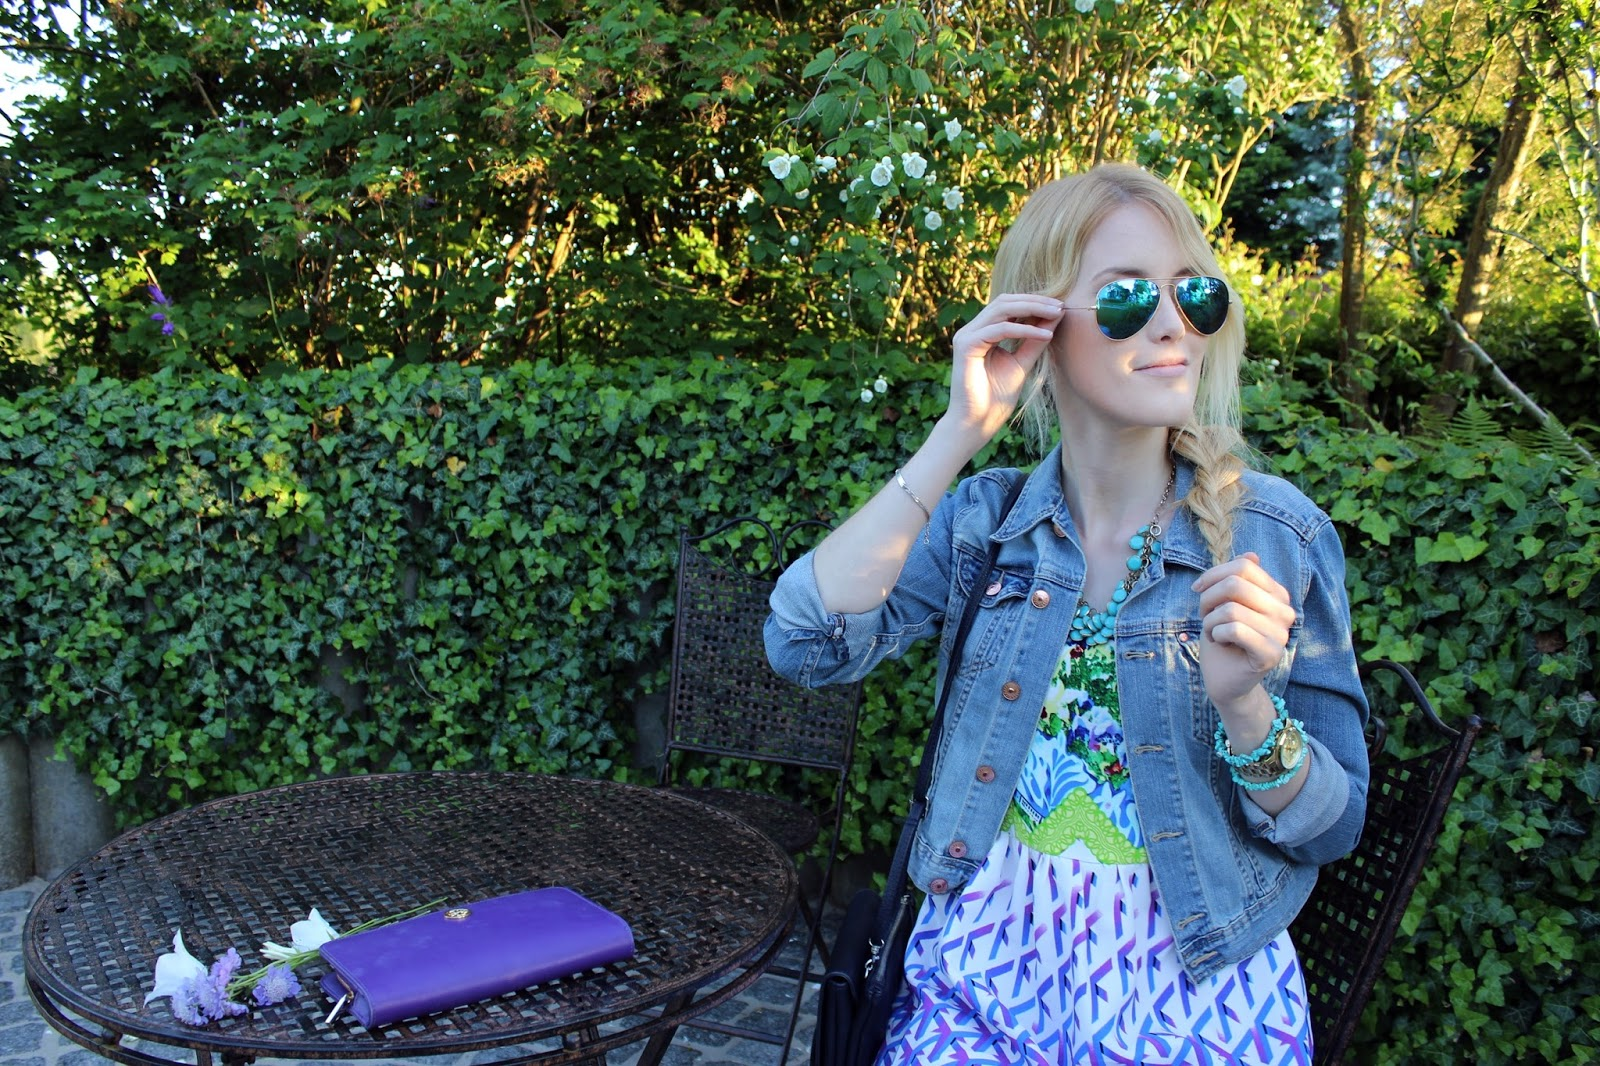 Dress Kleid TheBlondeLion Outfit Jeansjacke Prints Blonde Braid Casual Ray Ban